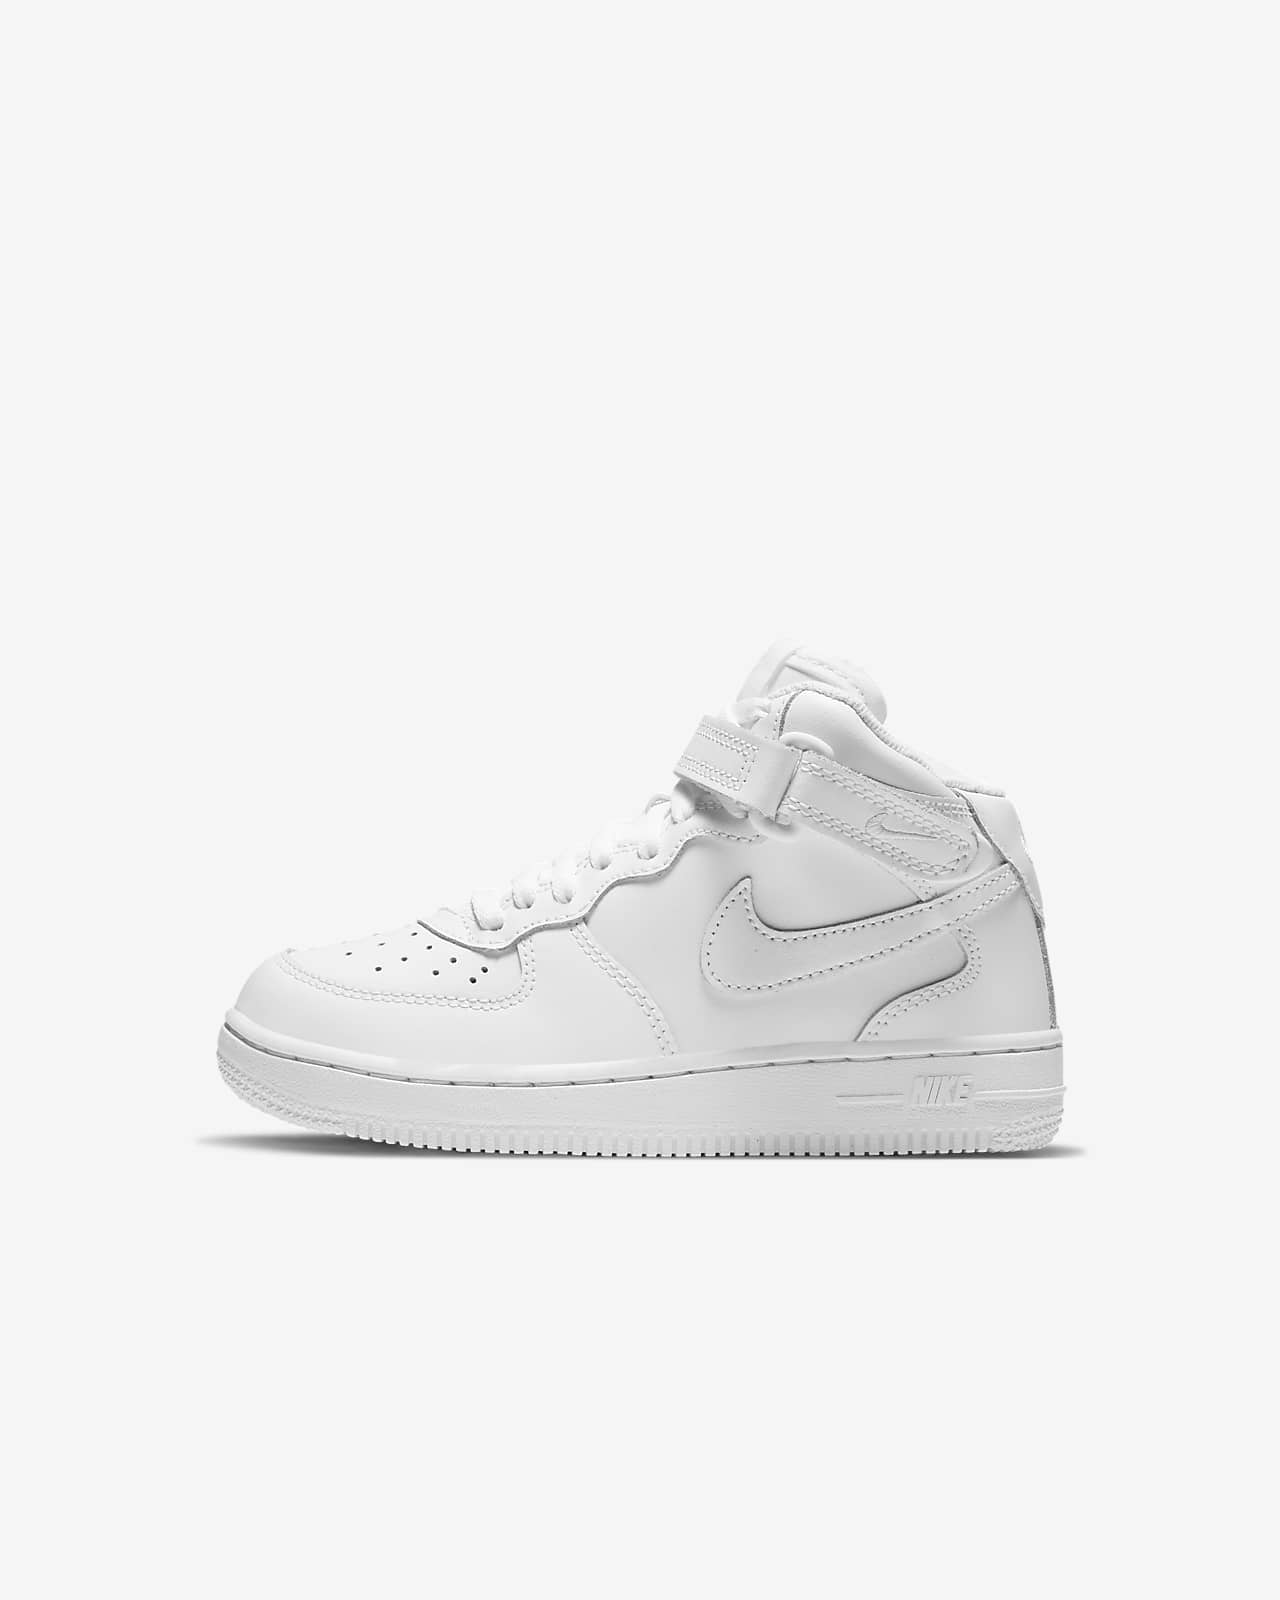 Nike Force 1 Mid (PS) 幼童运动童鞋